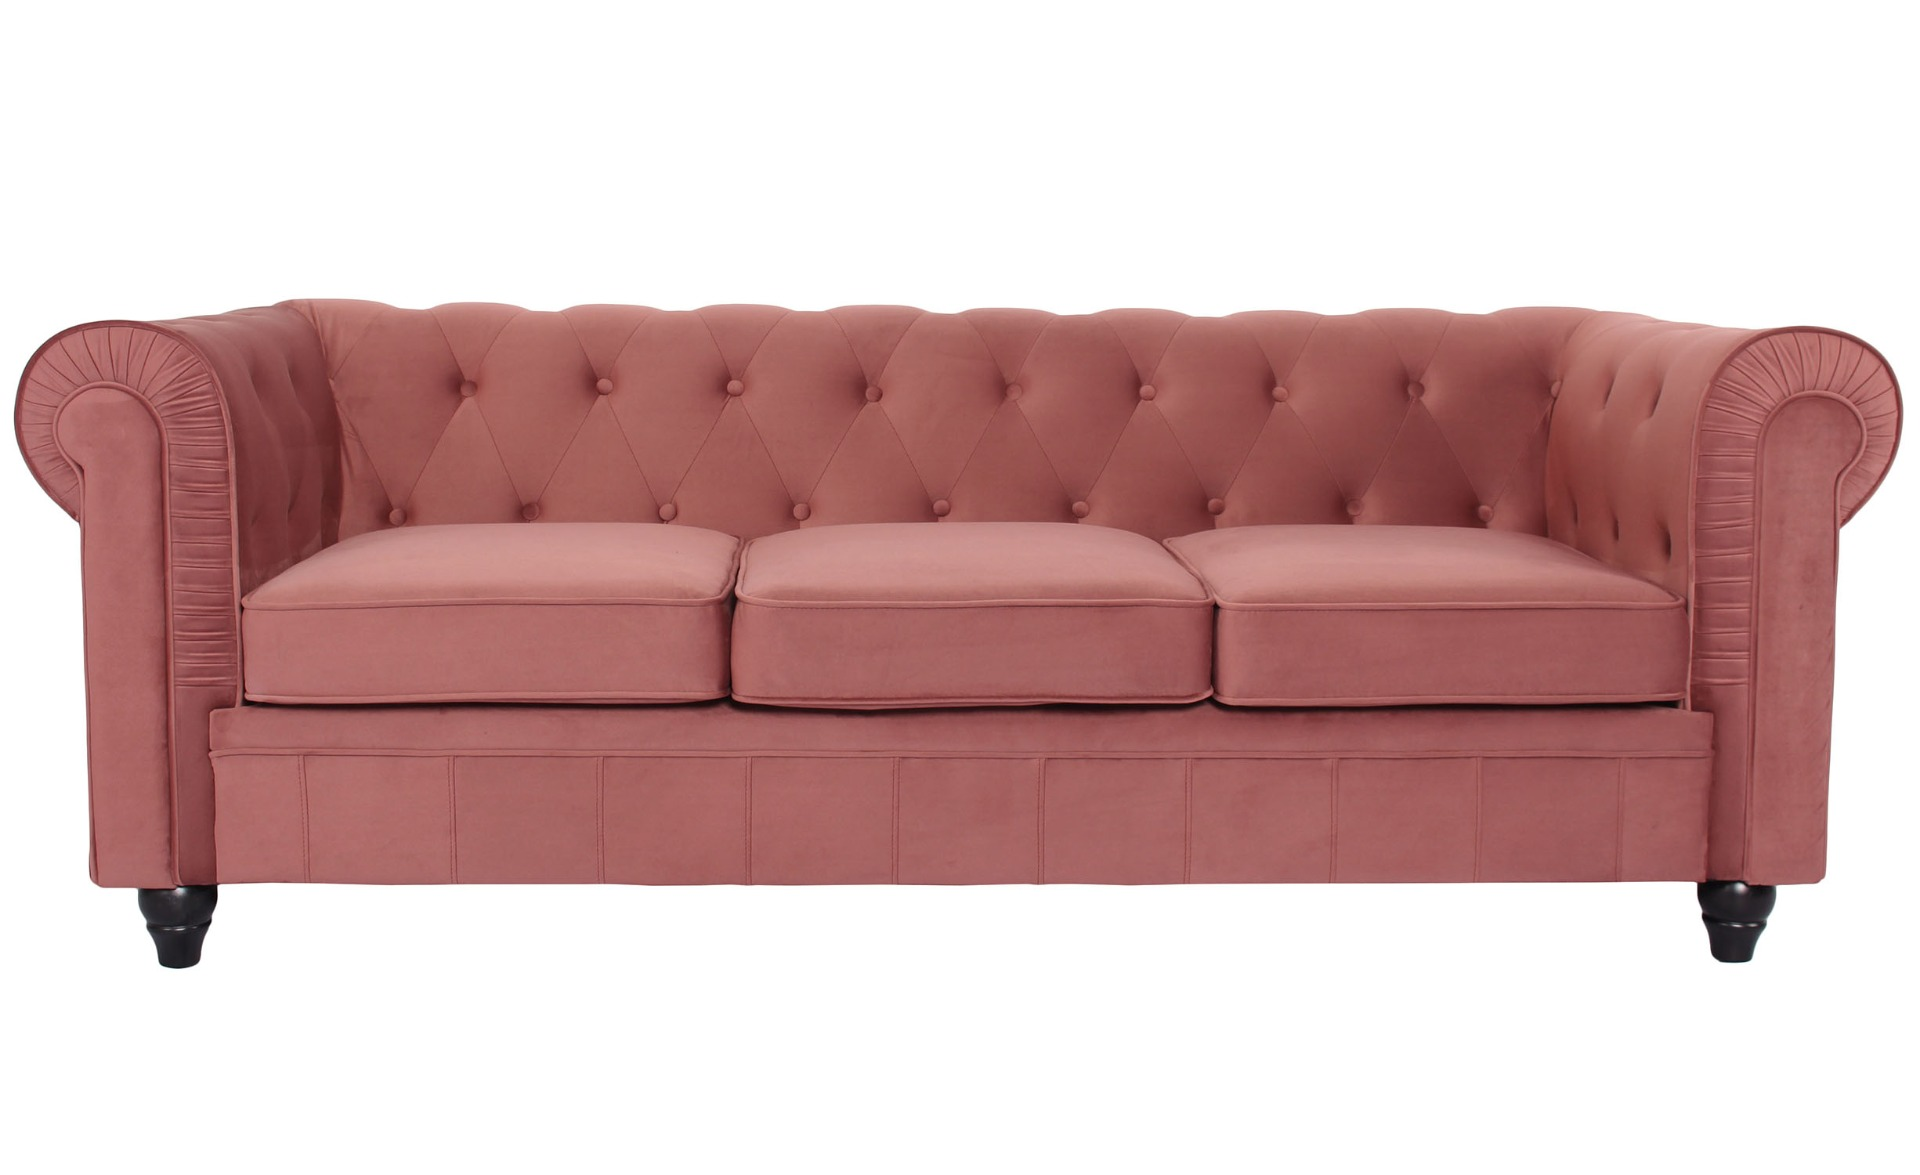 Grand canapé 3 places Chesterfield Velours Rose